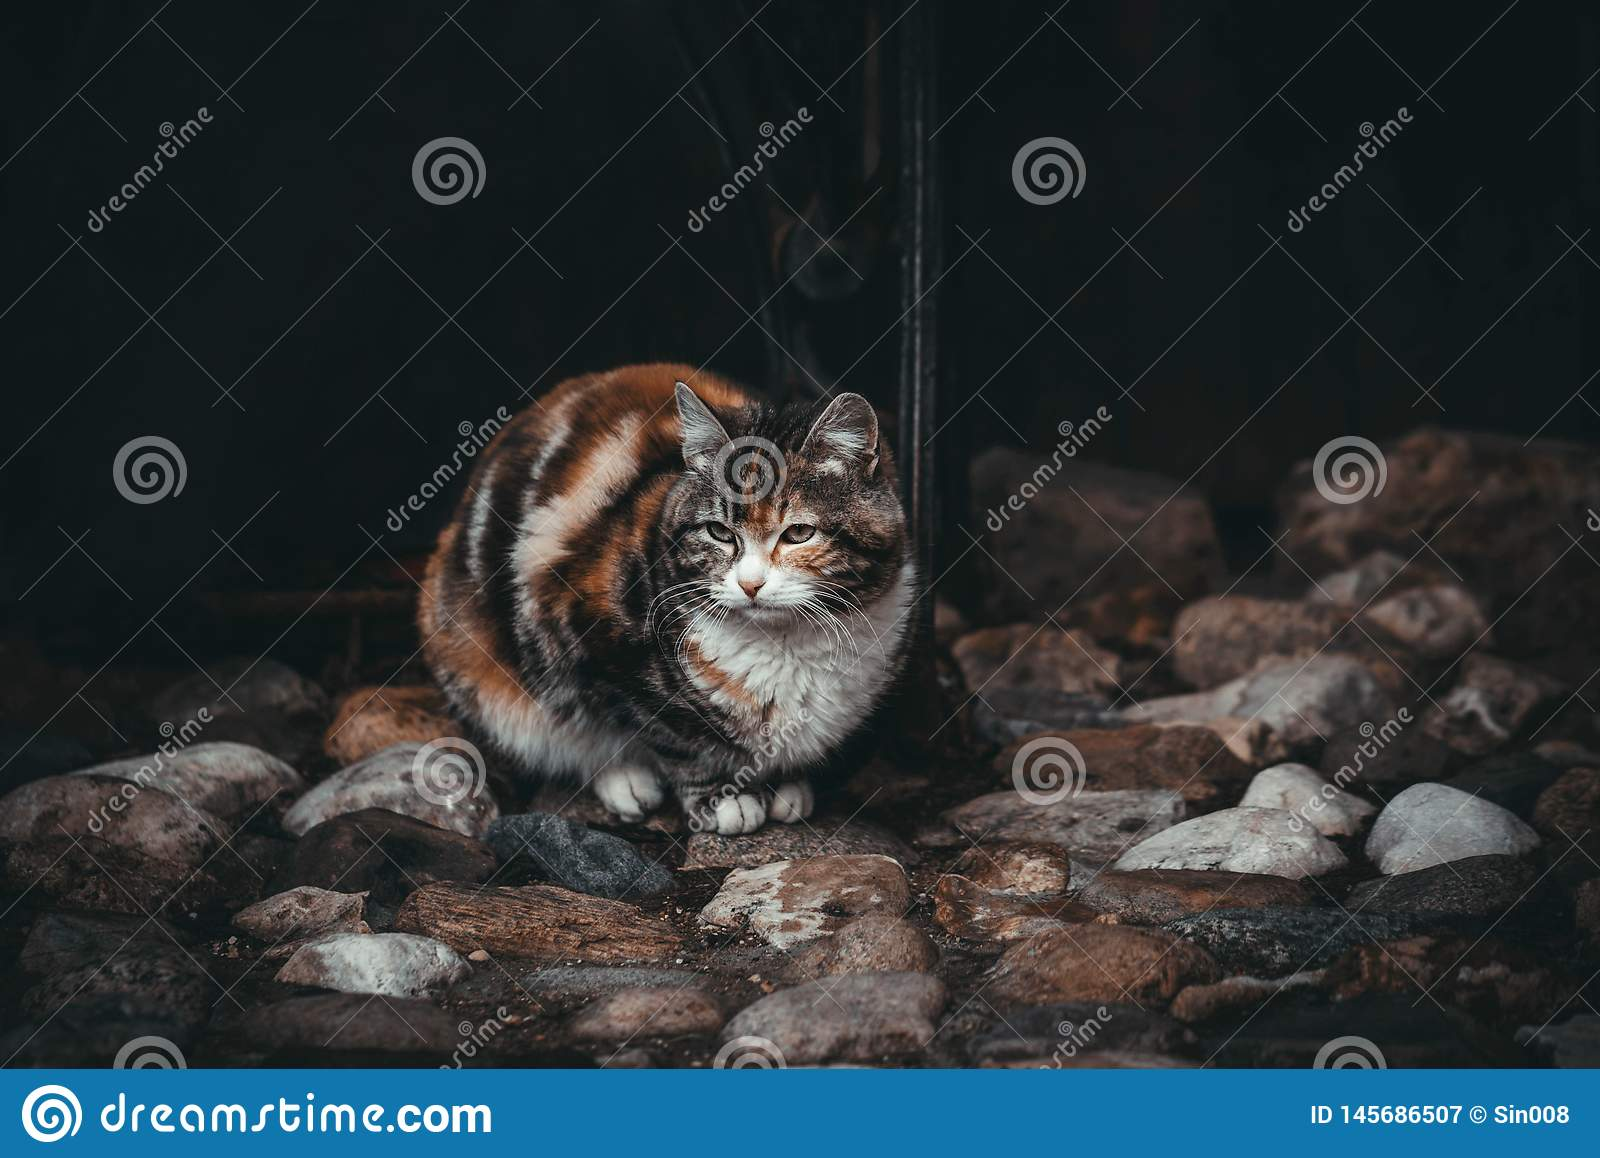 Sad cat on a black background. Waiting for the owner. Beautiful colorful cat on colorful stones. Street cats